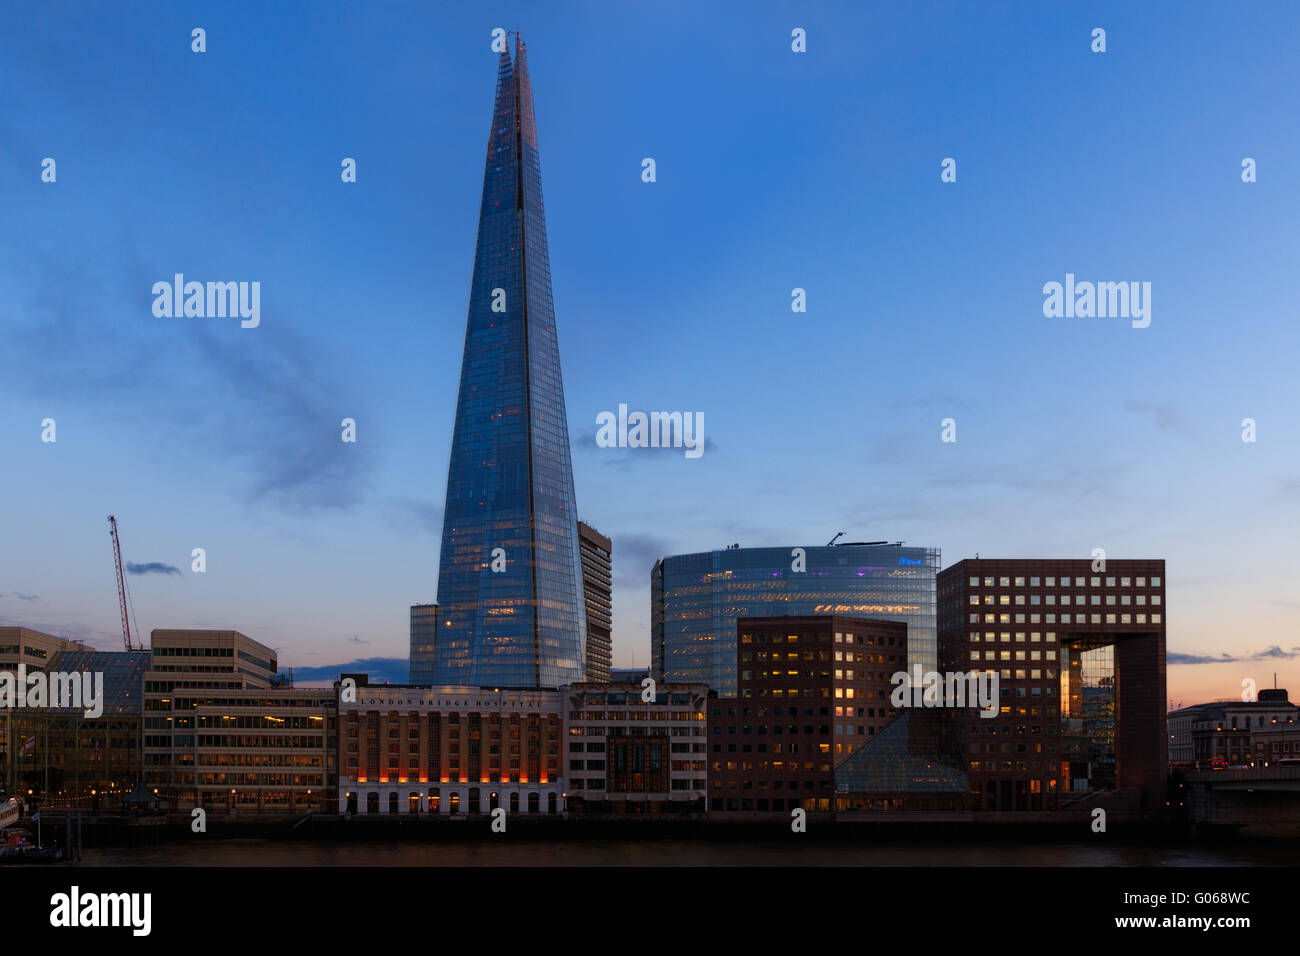 Sunset on the London skyline showing The Shard and office buildings - Stock Image